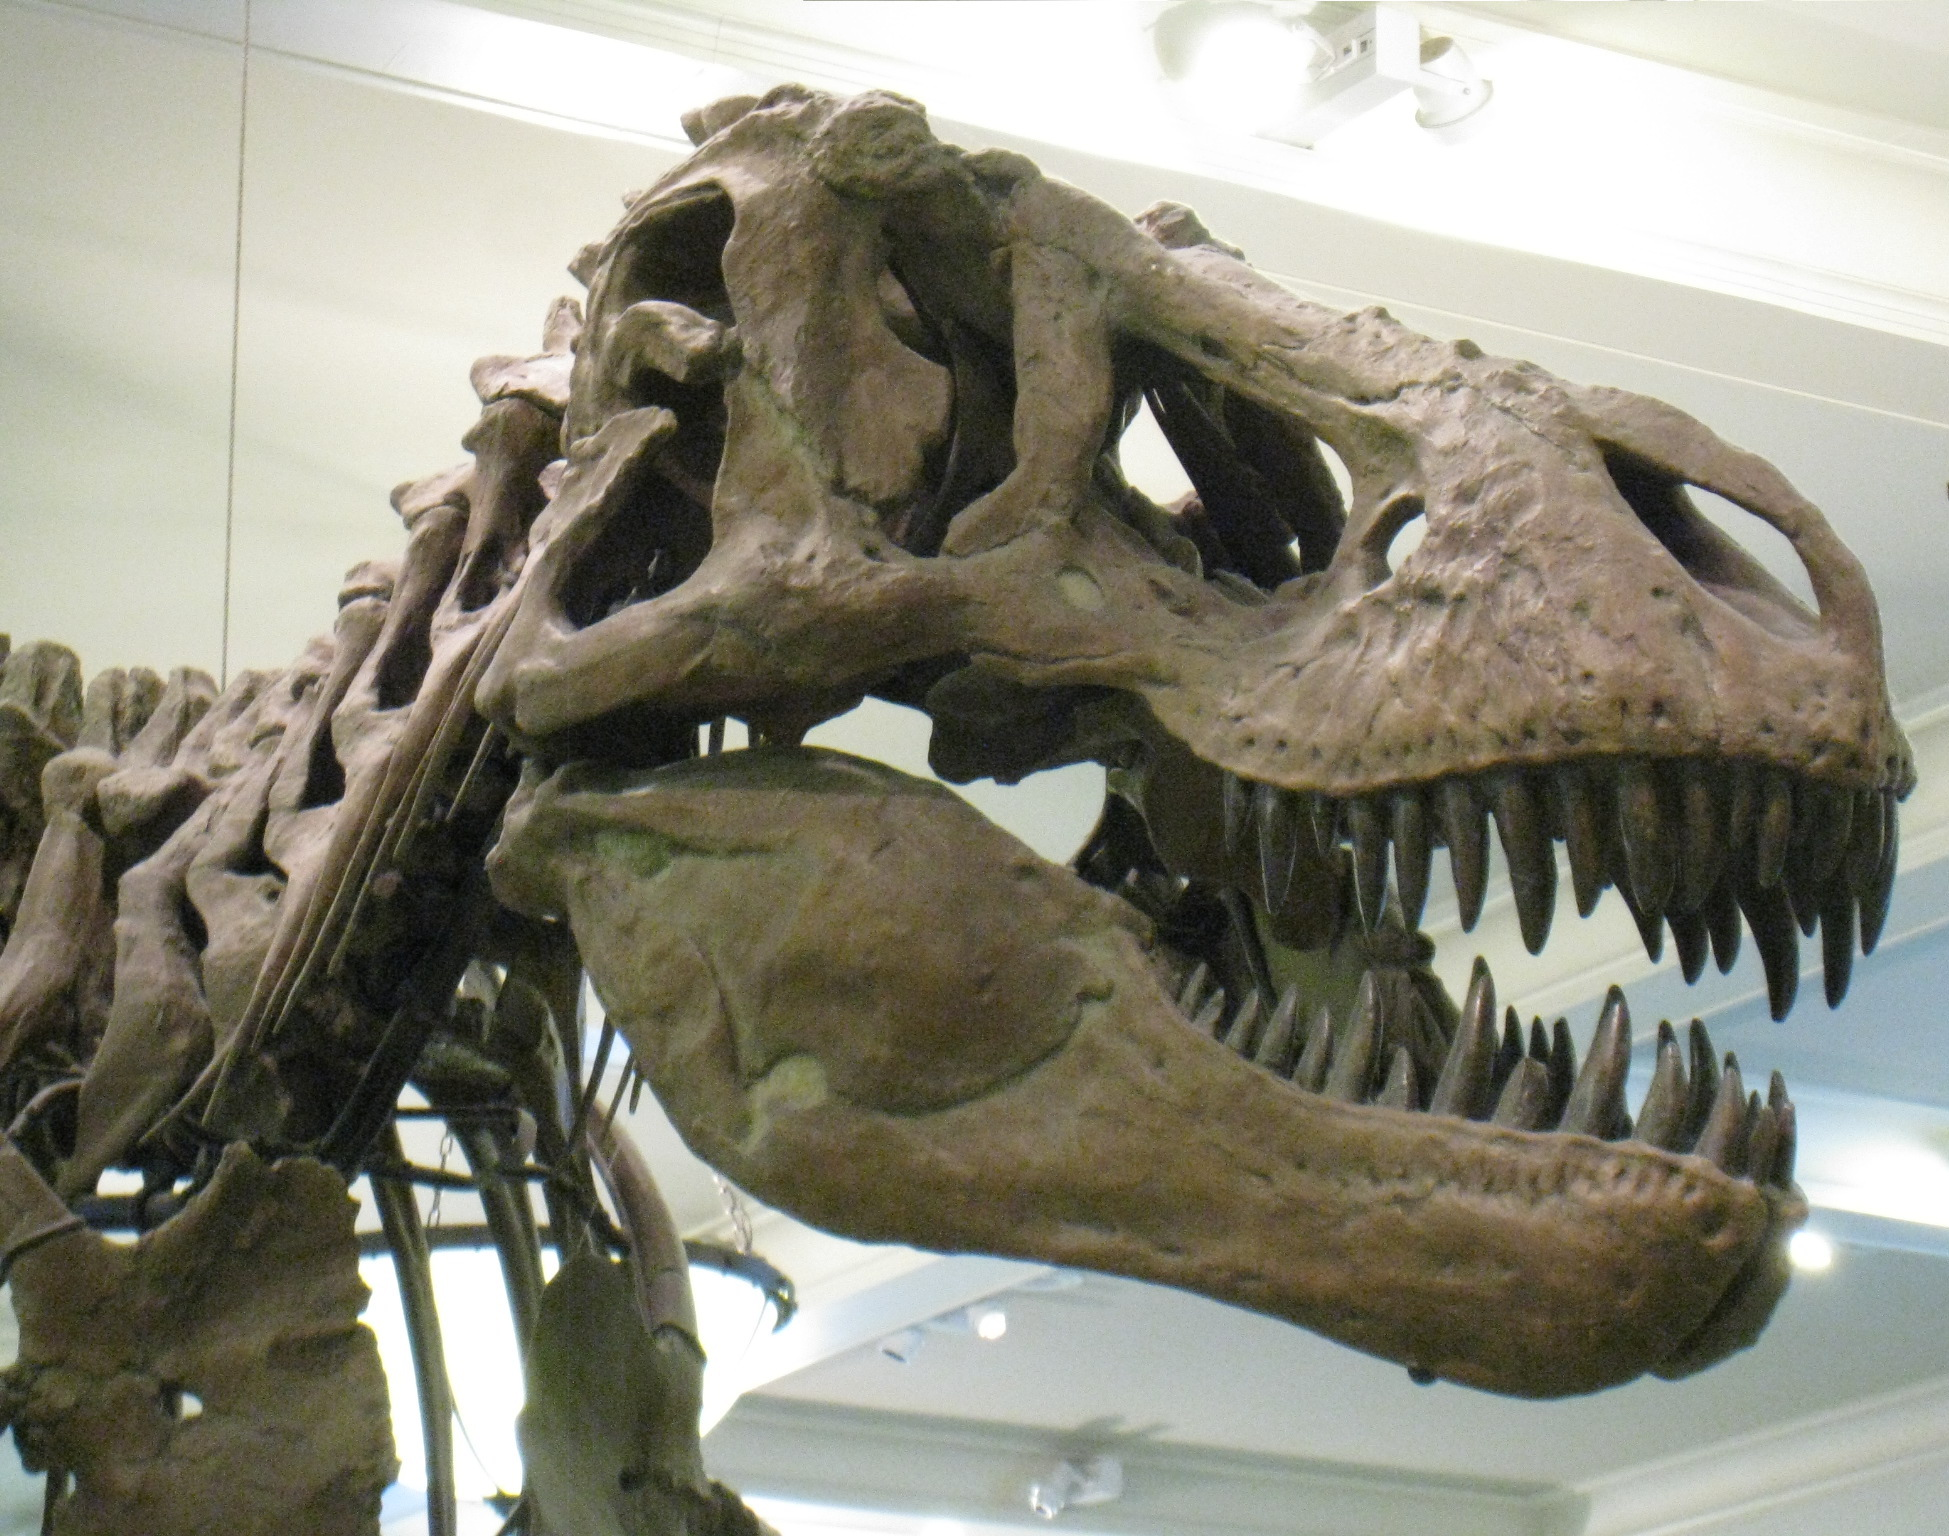 AMNH 5027. Photo by the author.